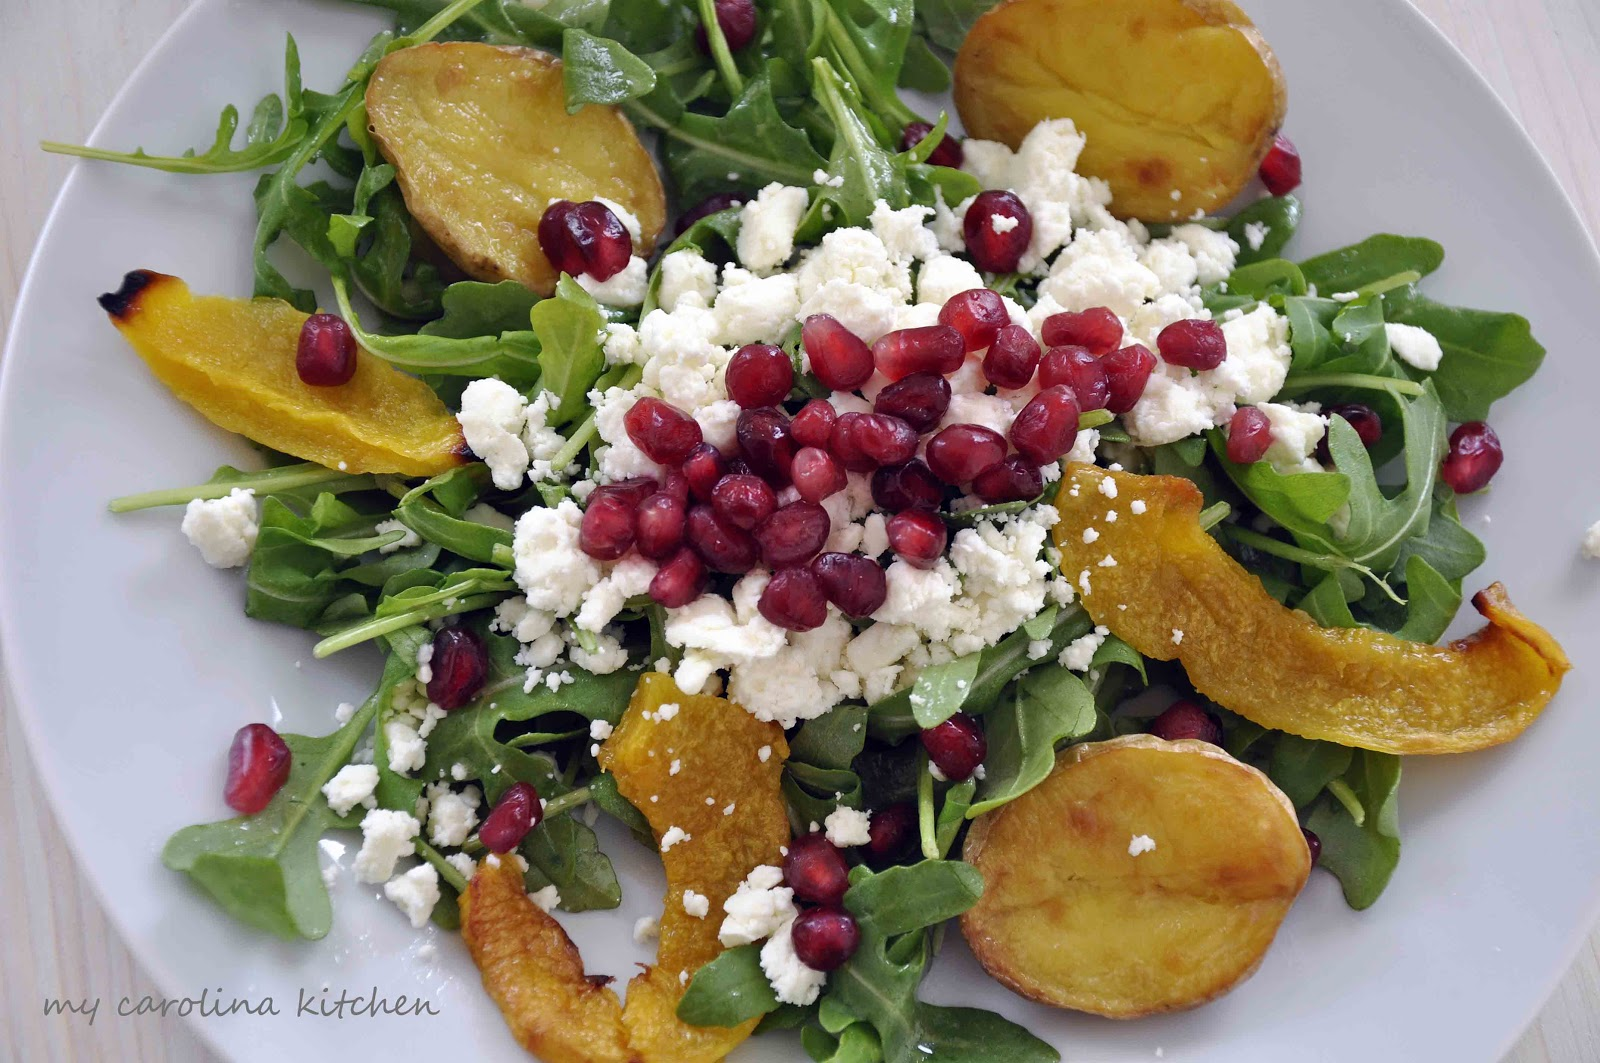 Winter Salad with Roasted Squash, Potatoes, & Pomegranate Seeds over ...